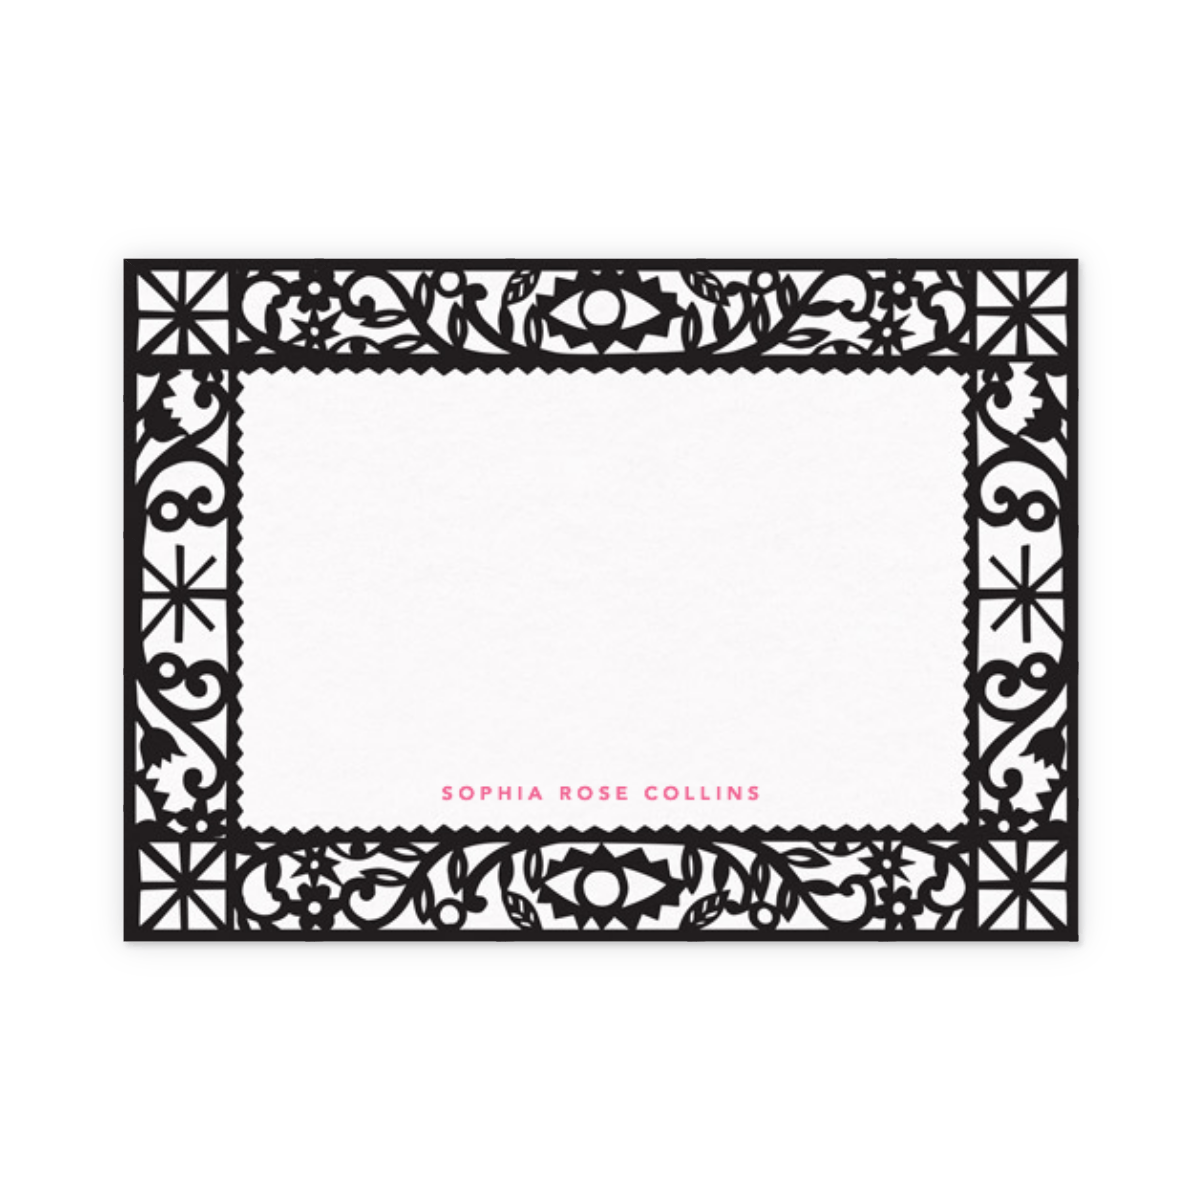 Https%3a%2f%2fwww.papier.com%2fproduct image%2f46525%2f10%2fintricate frame 11473 avant 1536846367.png?ixlib=rb 1.1